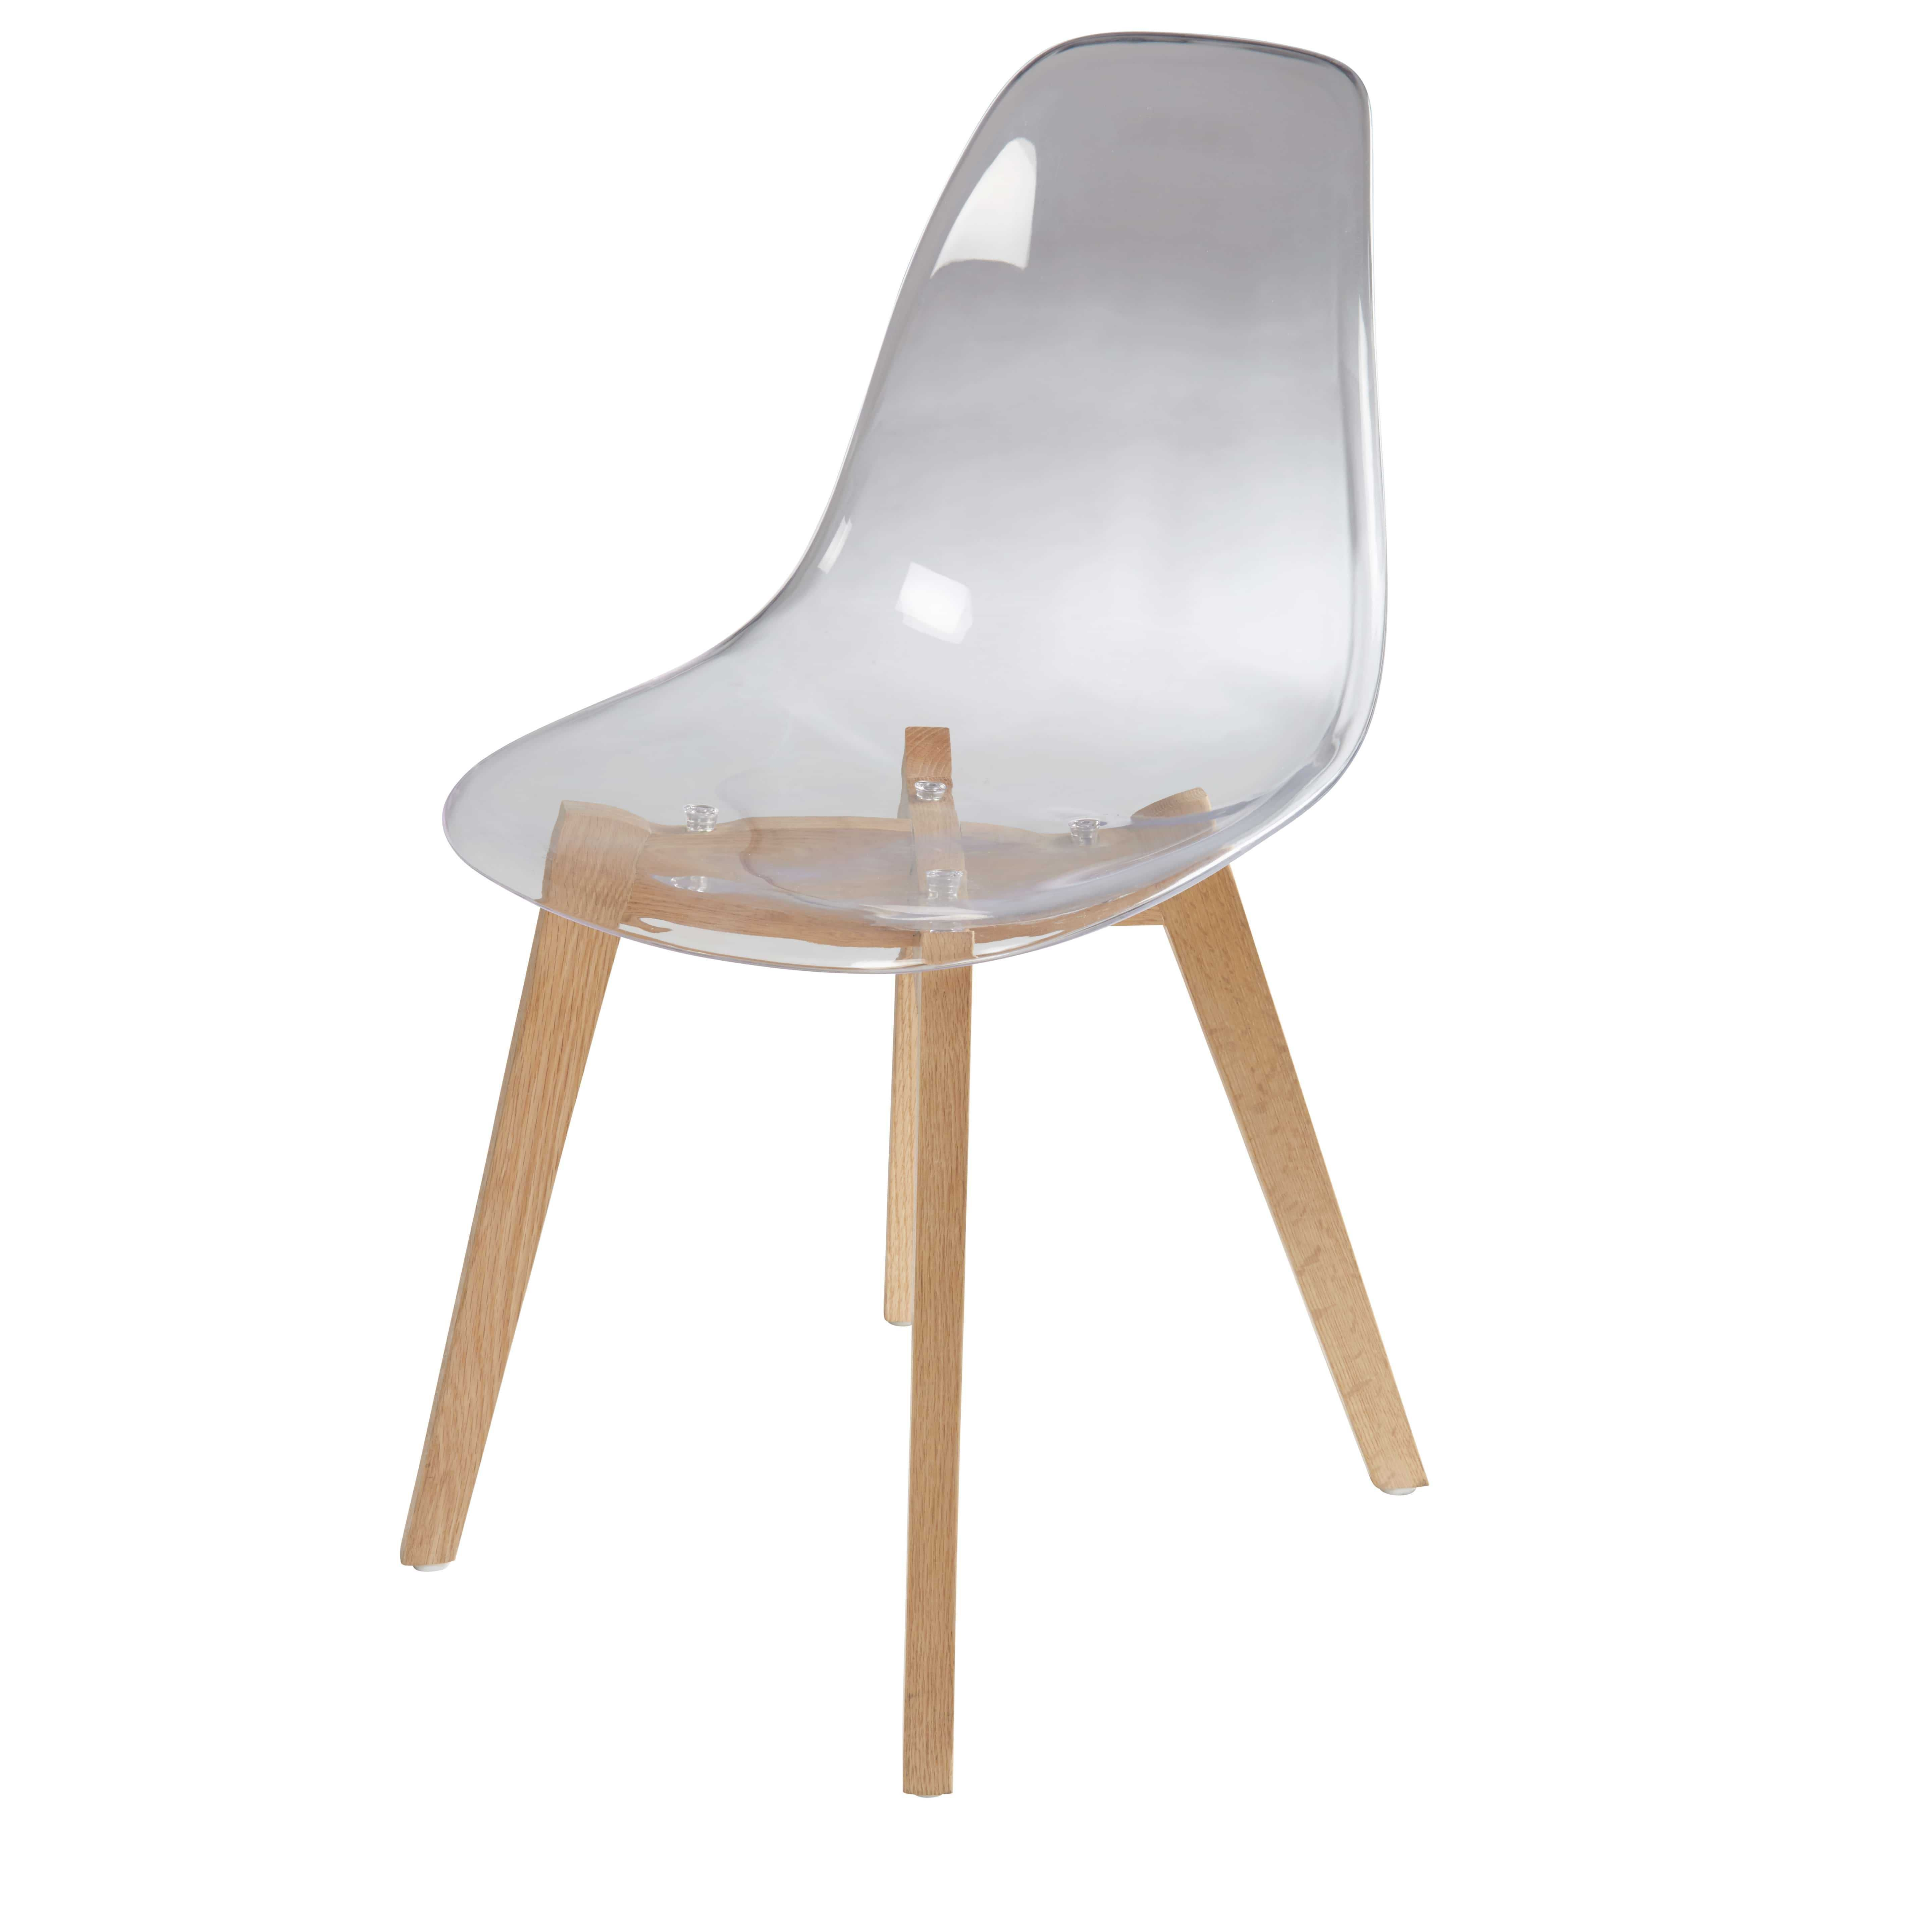 Chaise Scandinave Transparente Ice Decorationscandinave Scandinavian Chairs Farmhouse Chairs Luxury Office Chairs